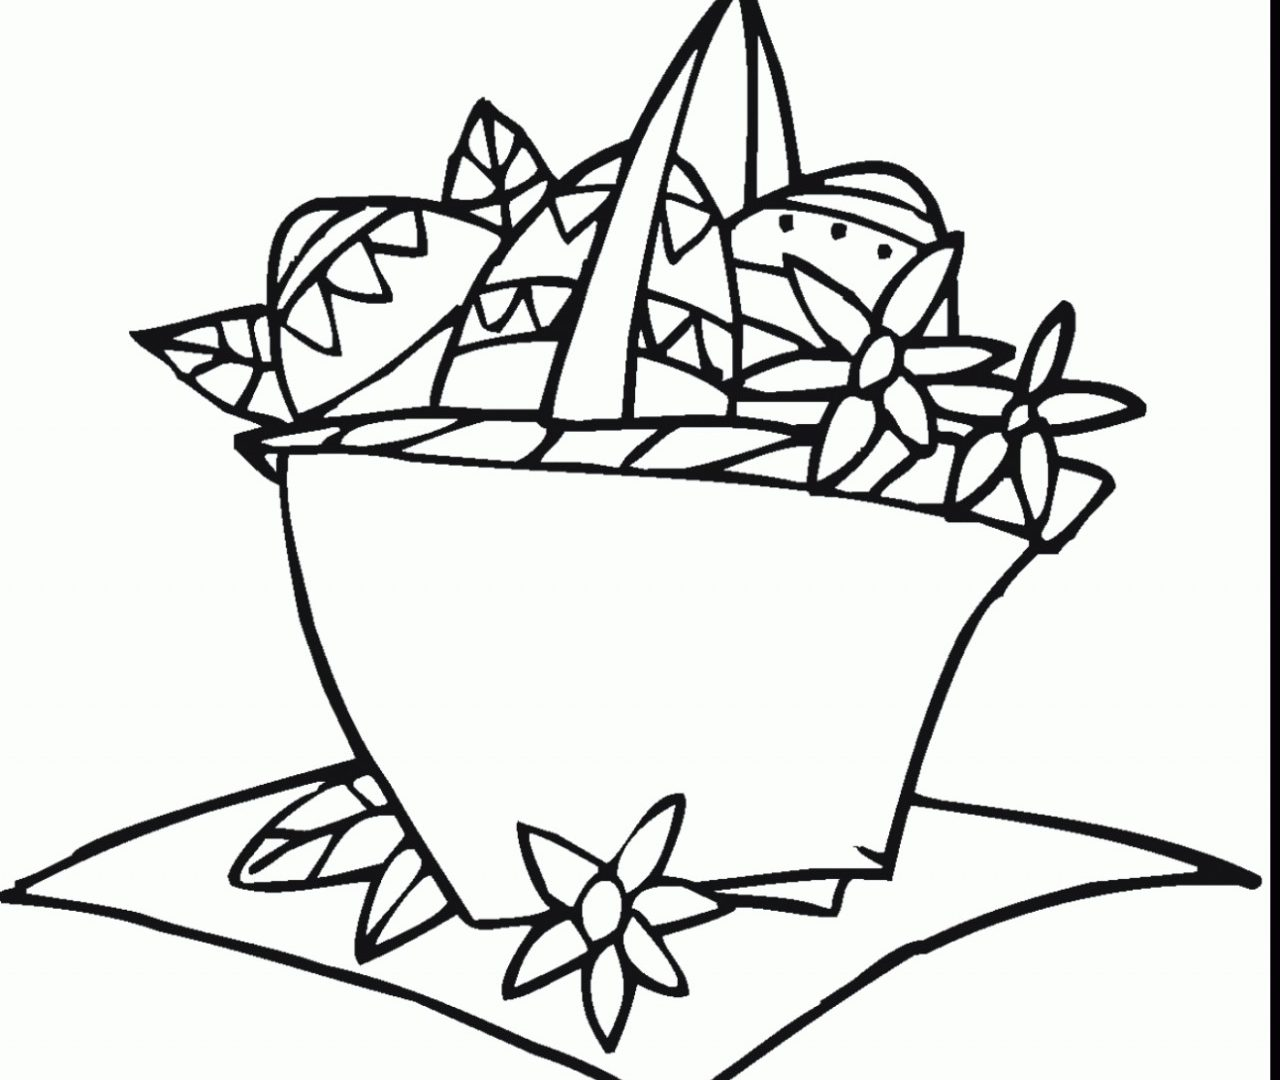 1280x1080 Make Your Own Coloring Pages Free Colouring Online Book Sheet